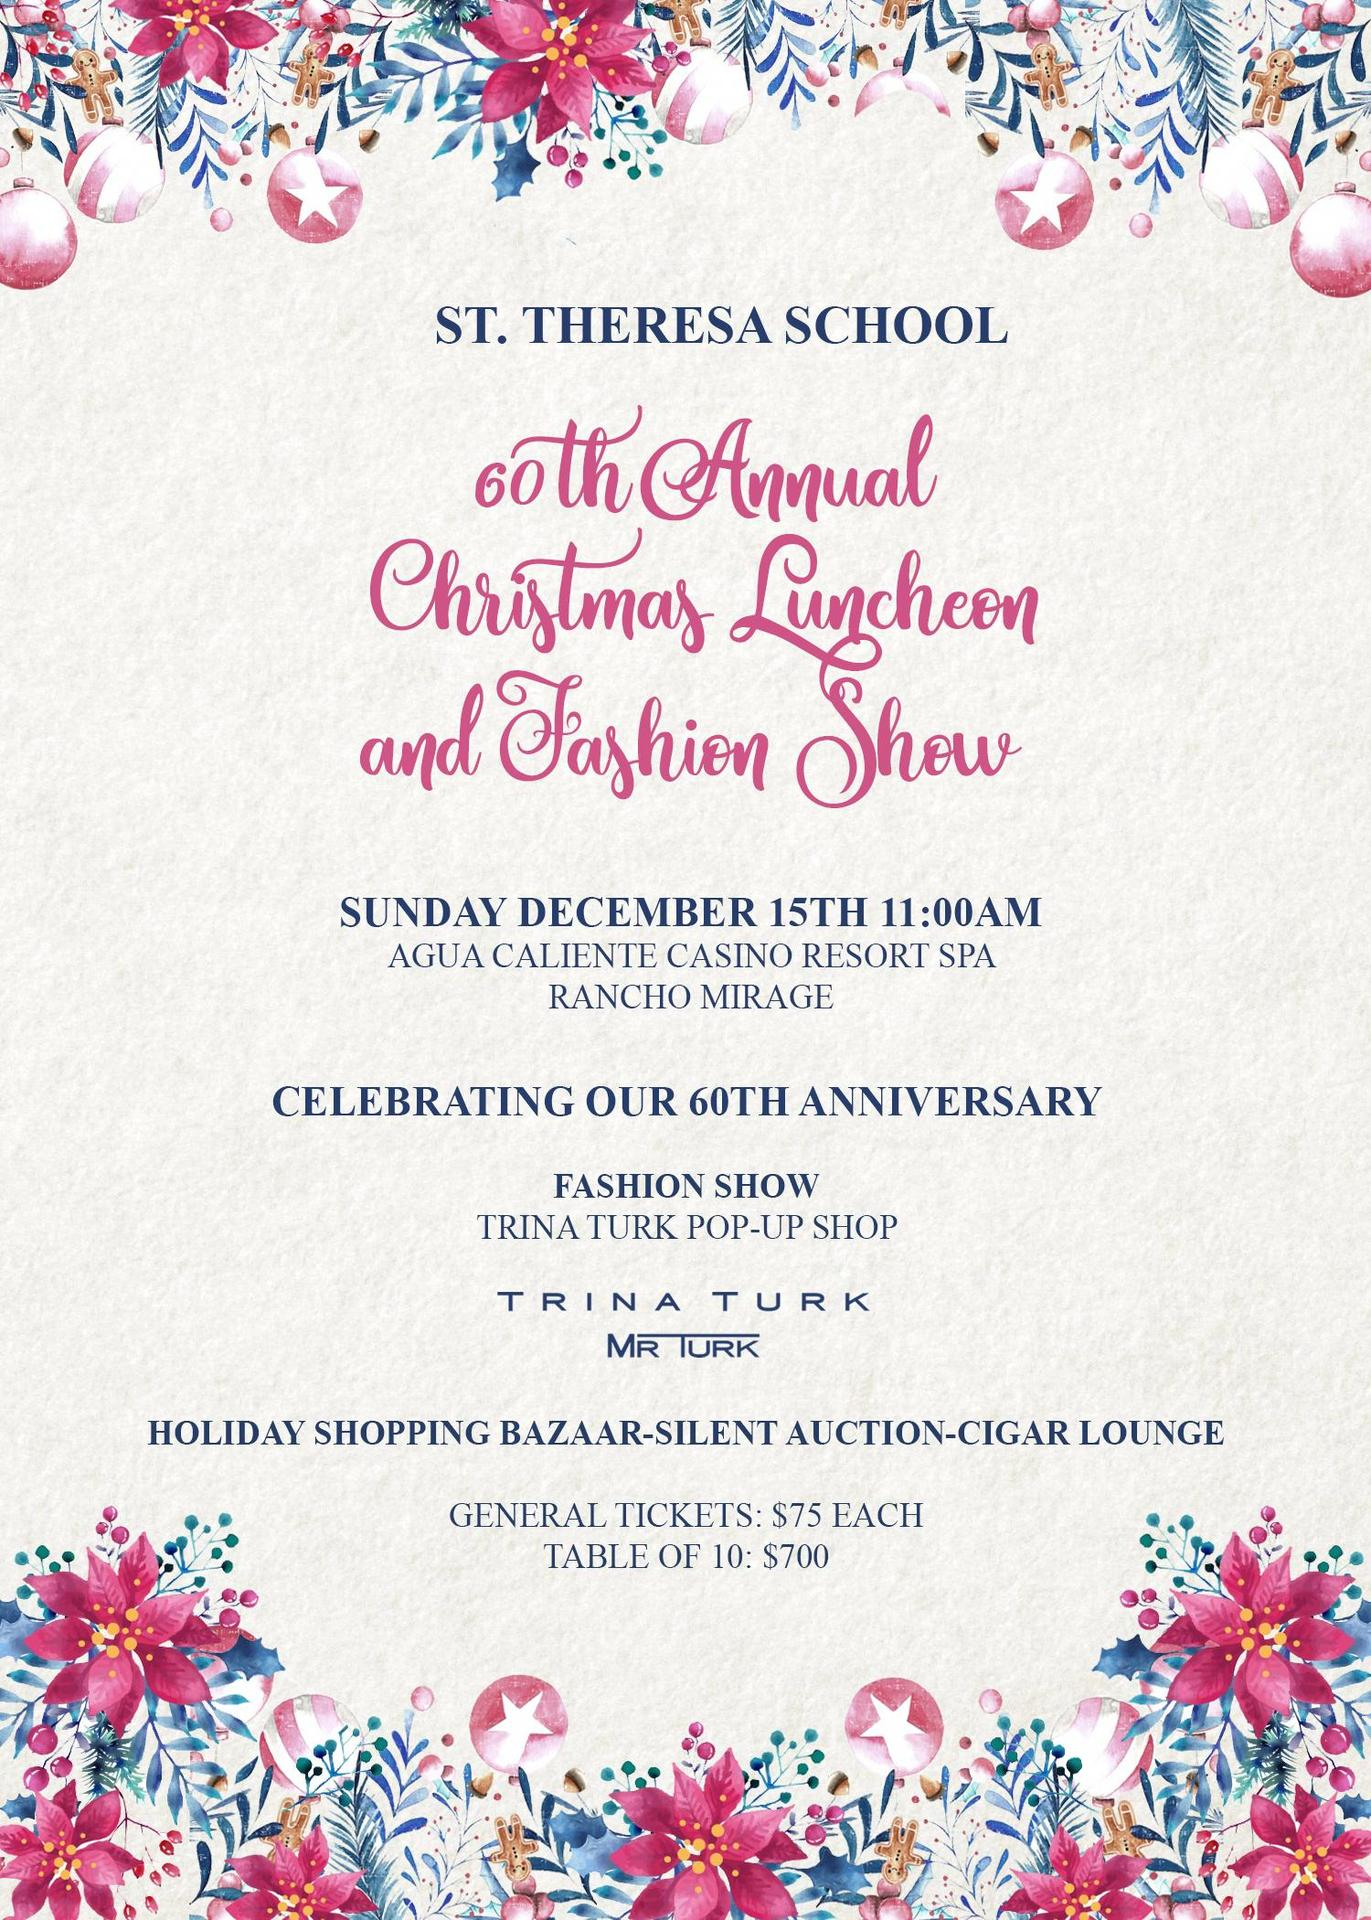 Buy Tickets Now! 60th Annual Christmas Luncheon and Fashion Show Sunday December 15th 11:00AM